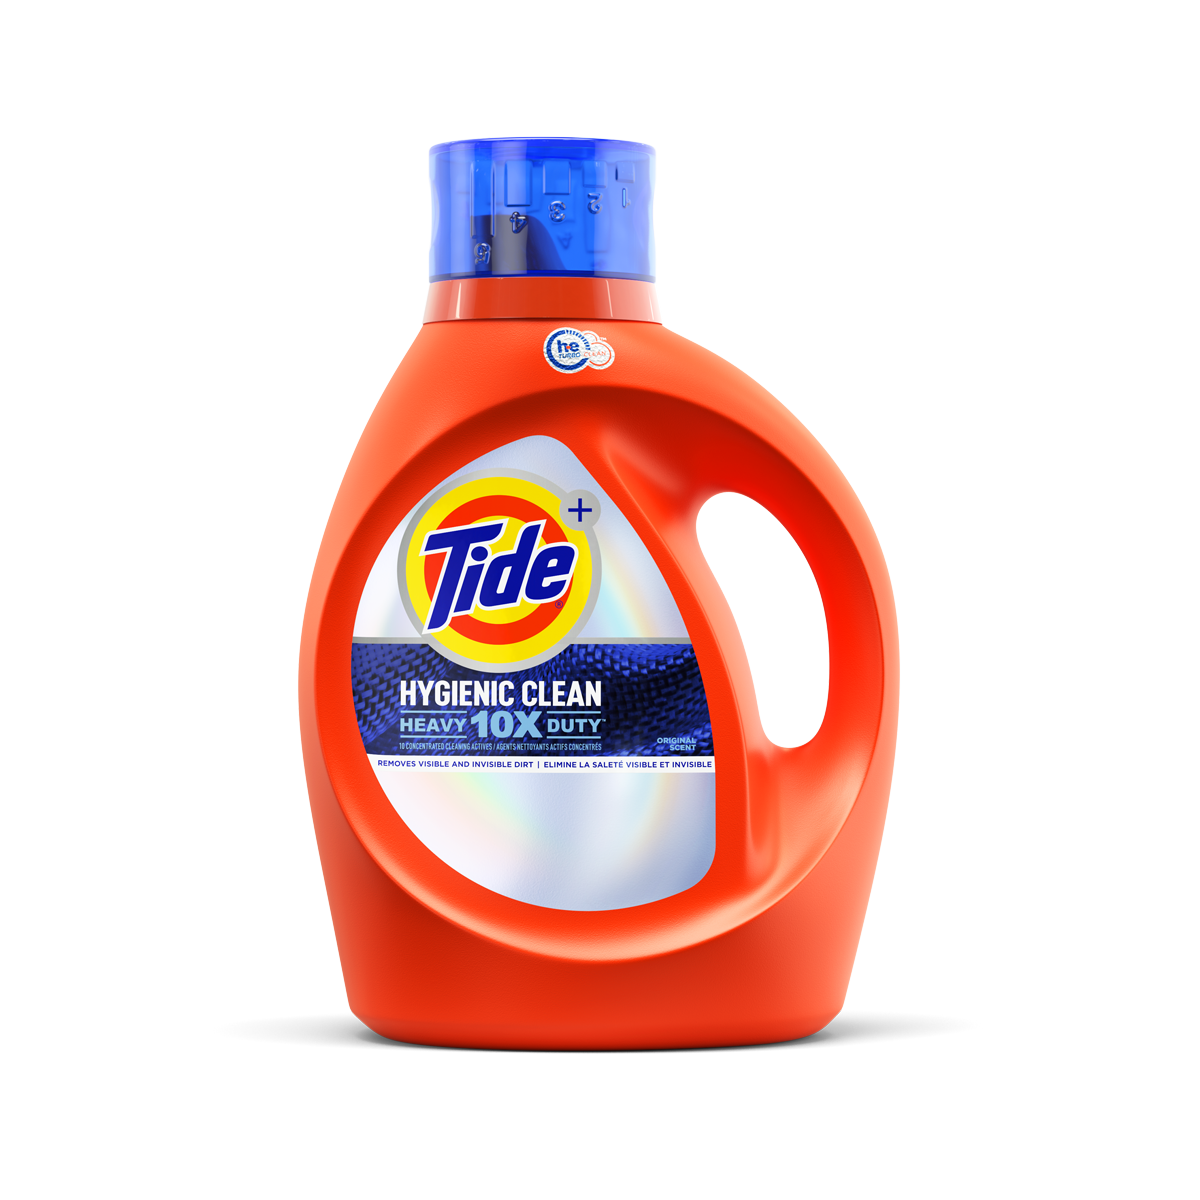 Tide Hygienic Clean Heavy Duty 10x Liquid Detergent Original Scent